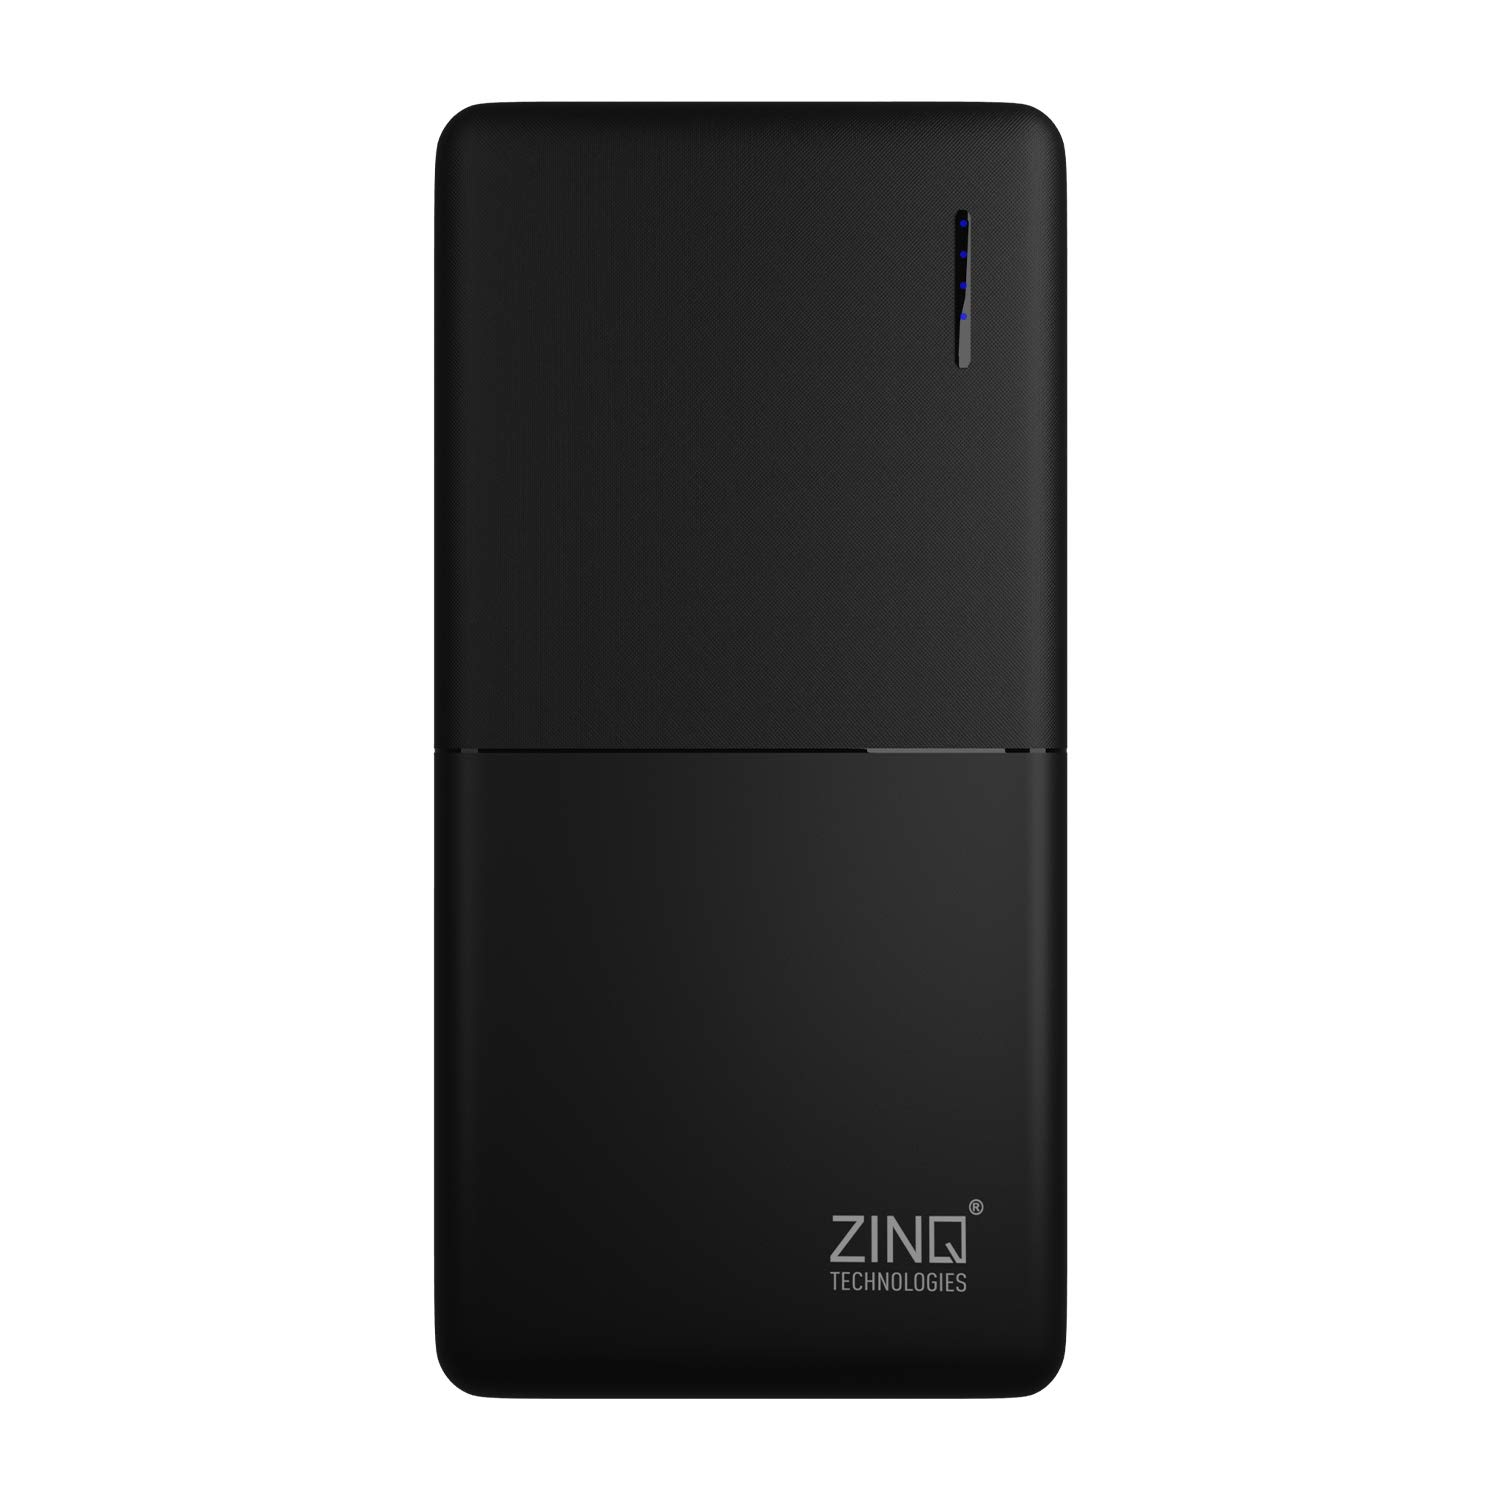 Zinq 20000mAh Li-Polymer Power Bank with 18W PD and QC 3.0 Quick Charge Z20KP (Black)